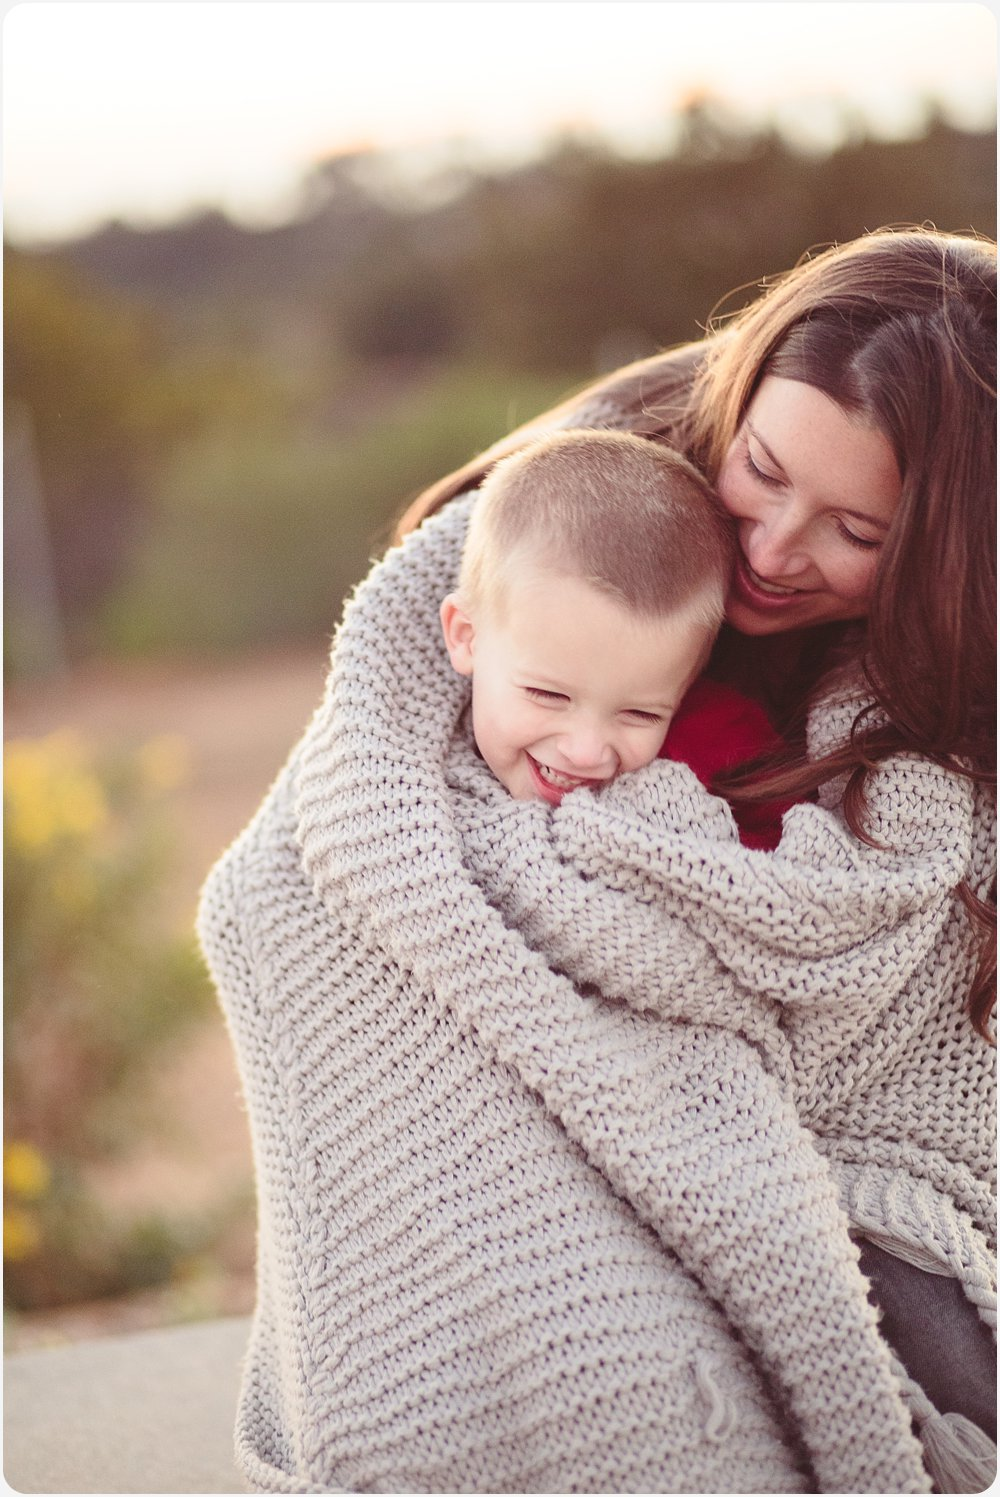 Blanket Snuggles | San Diego Natural Light Family Photography